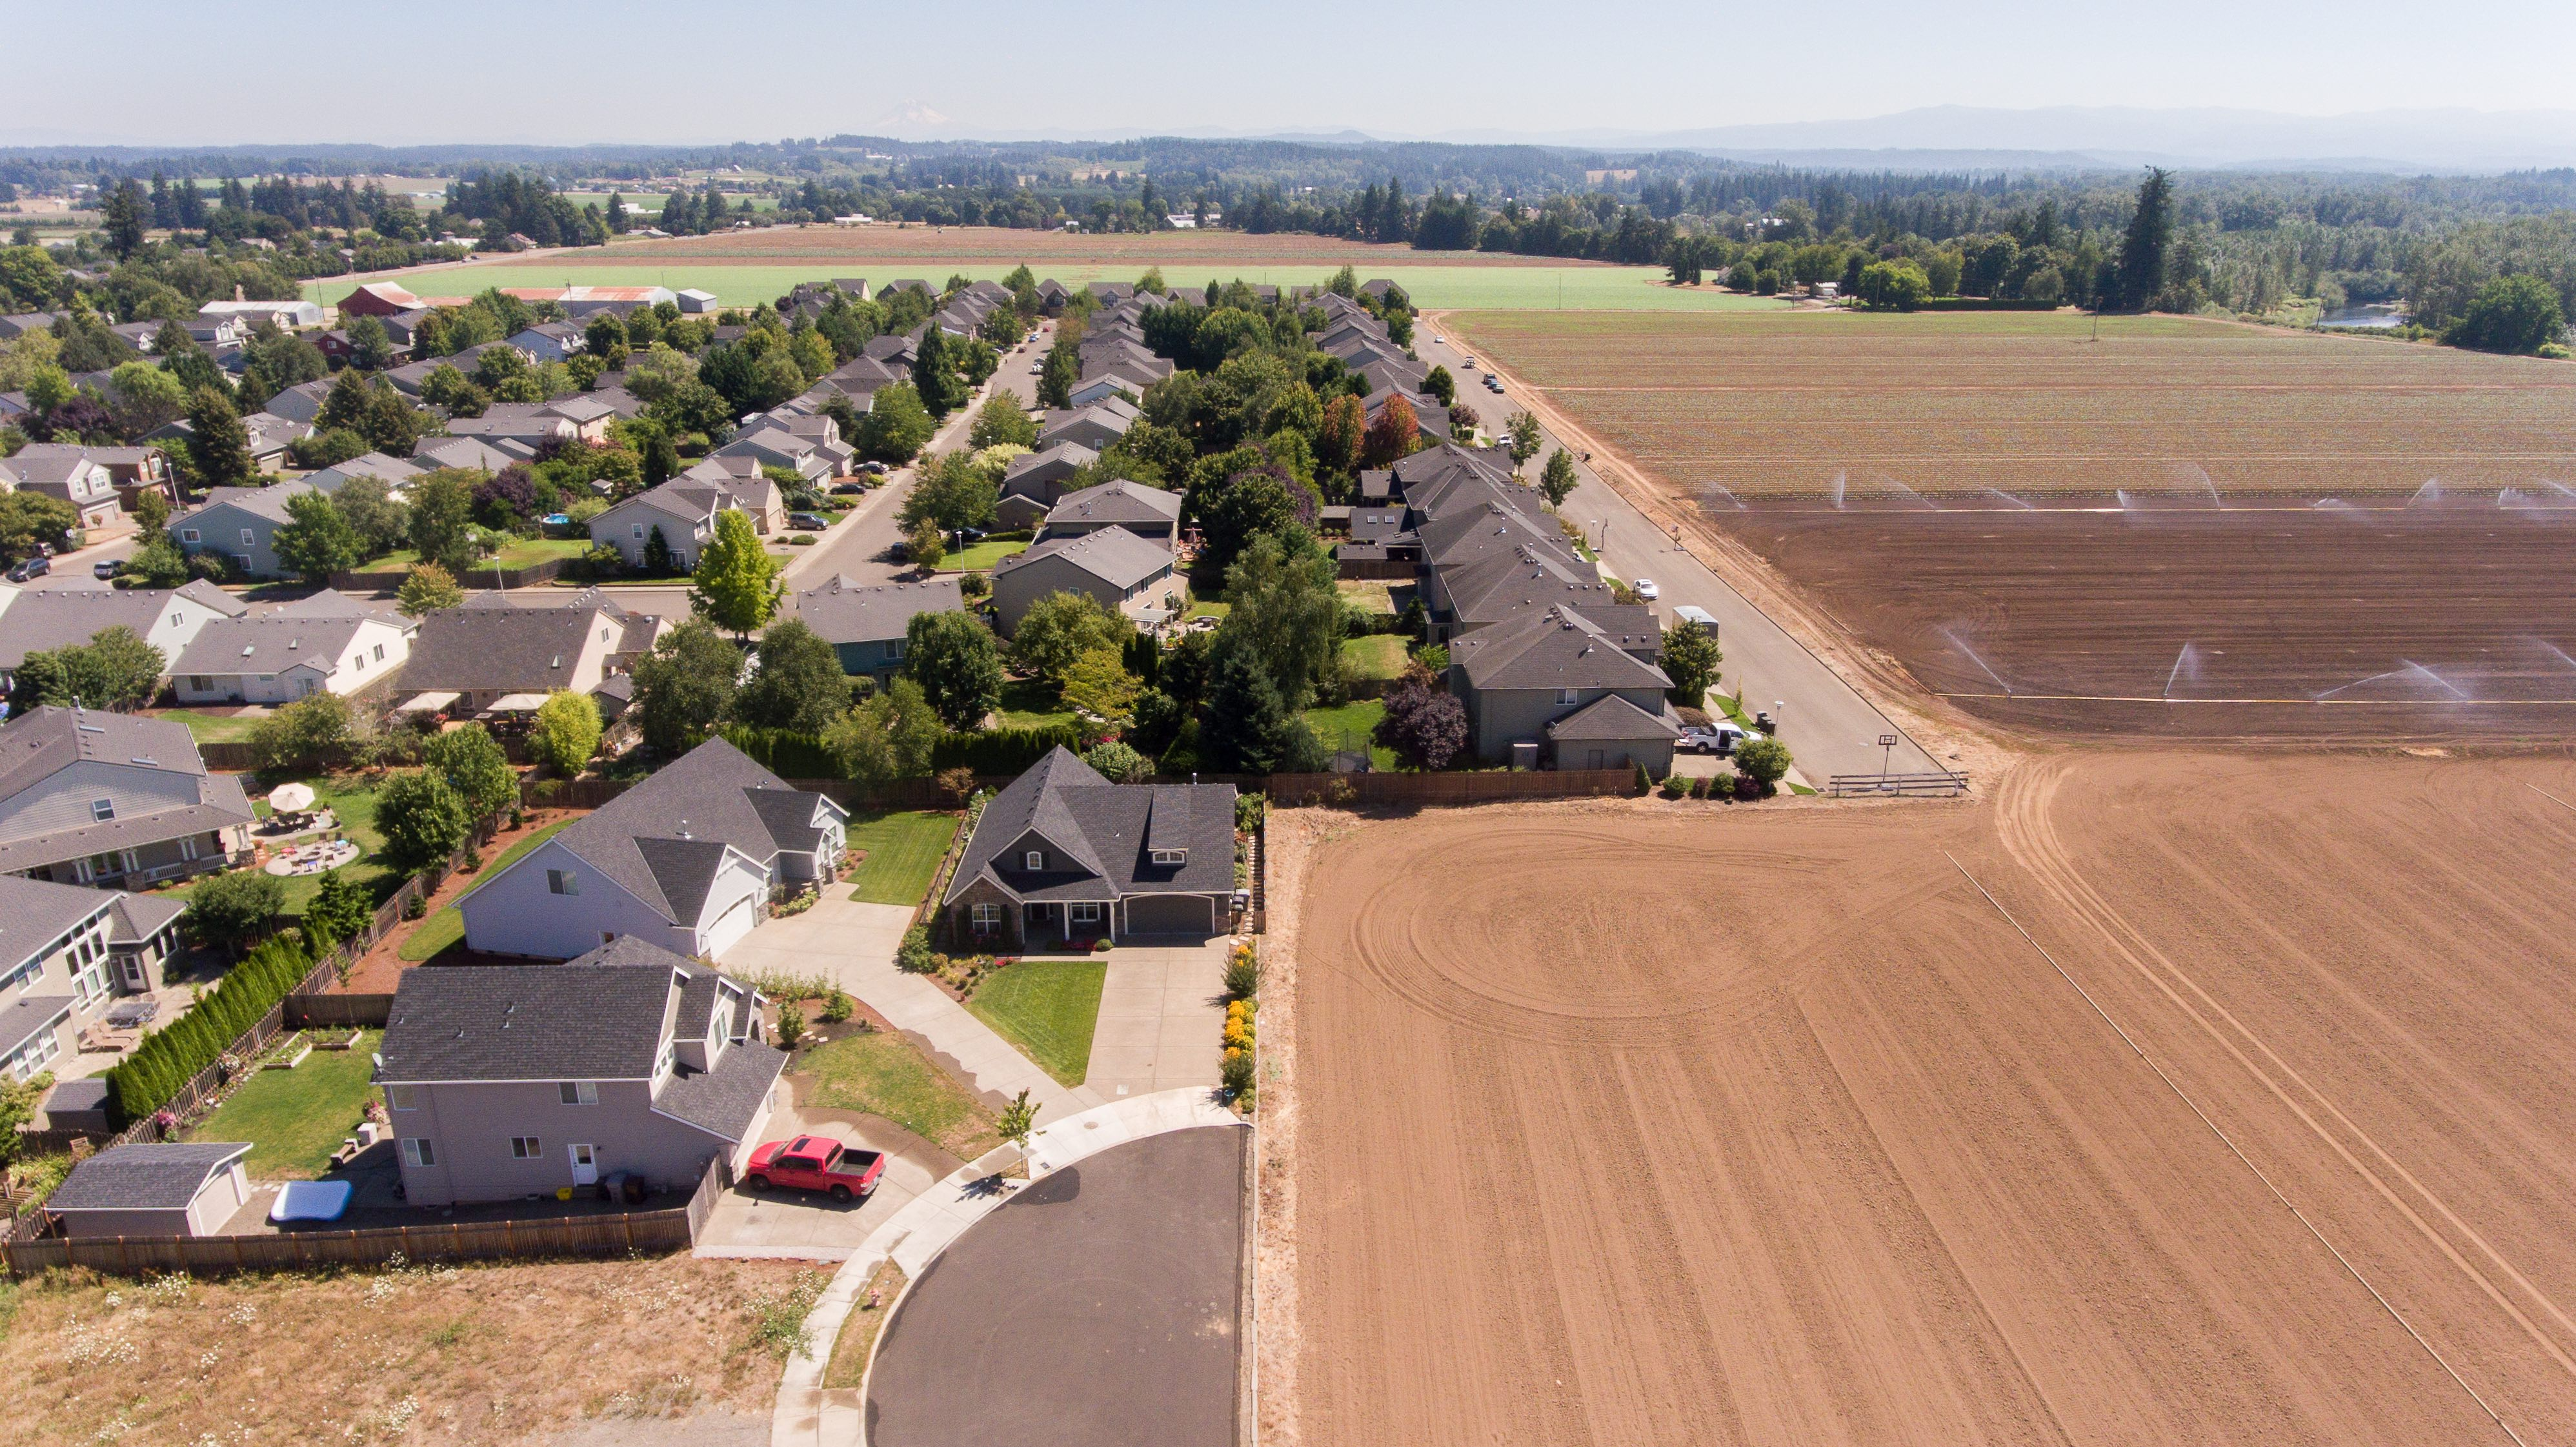 Canby, OR Residential Neighborhood of Homes